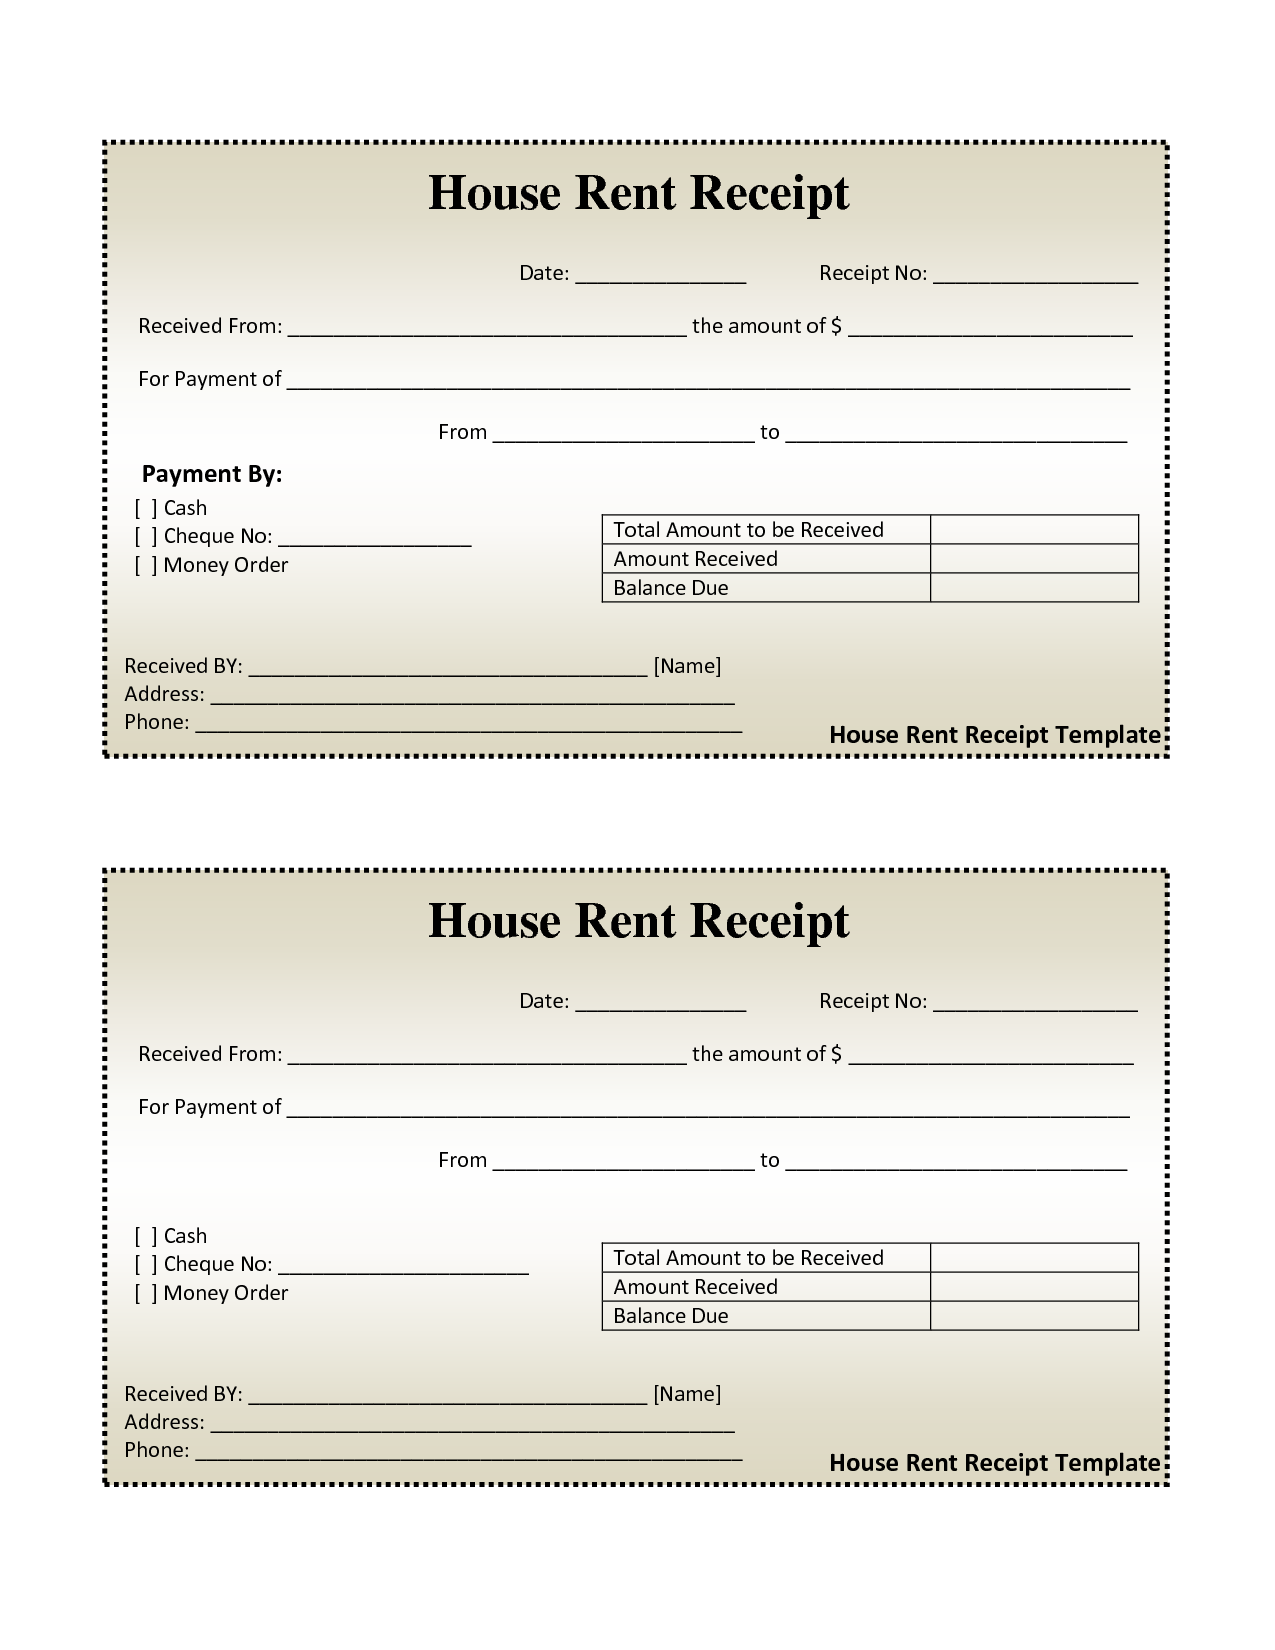 free house rental invoice – House Rent Receipt Template